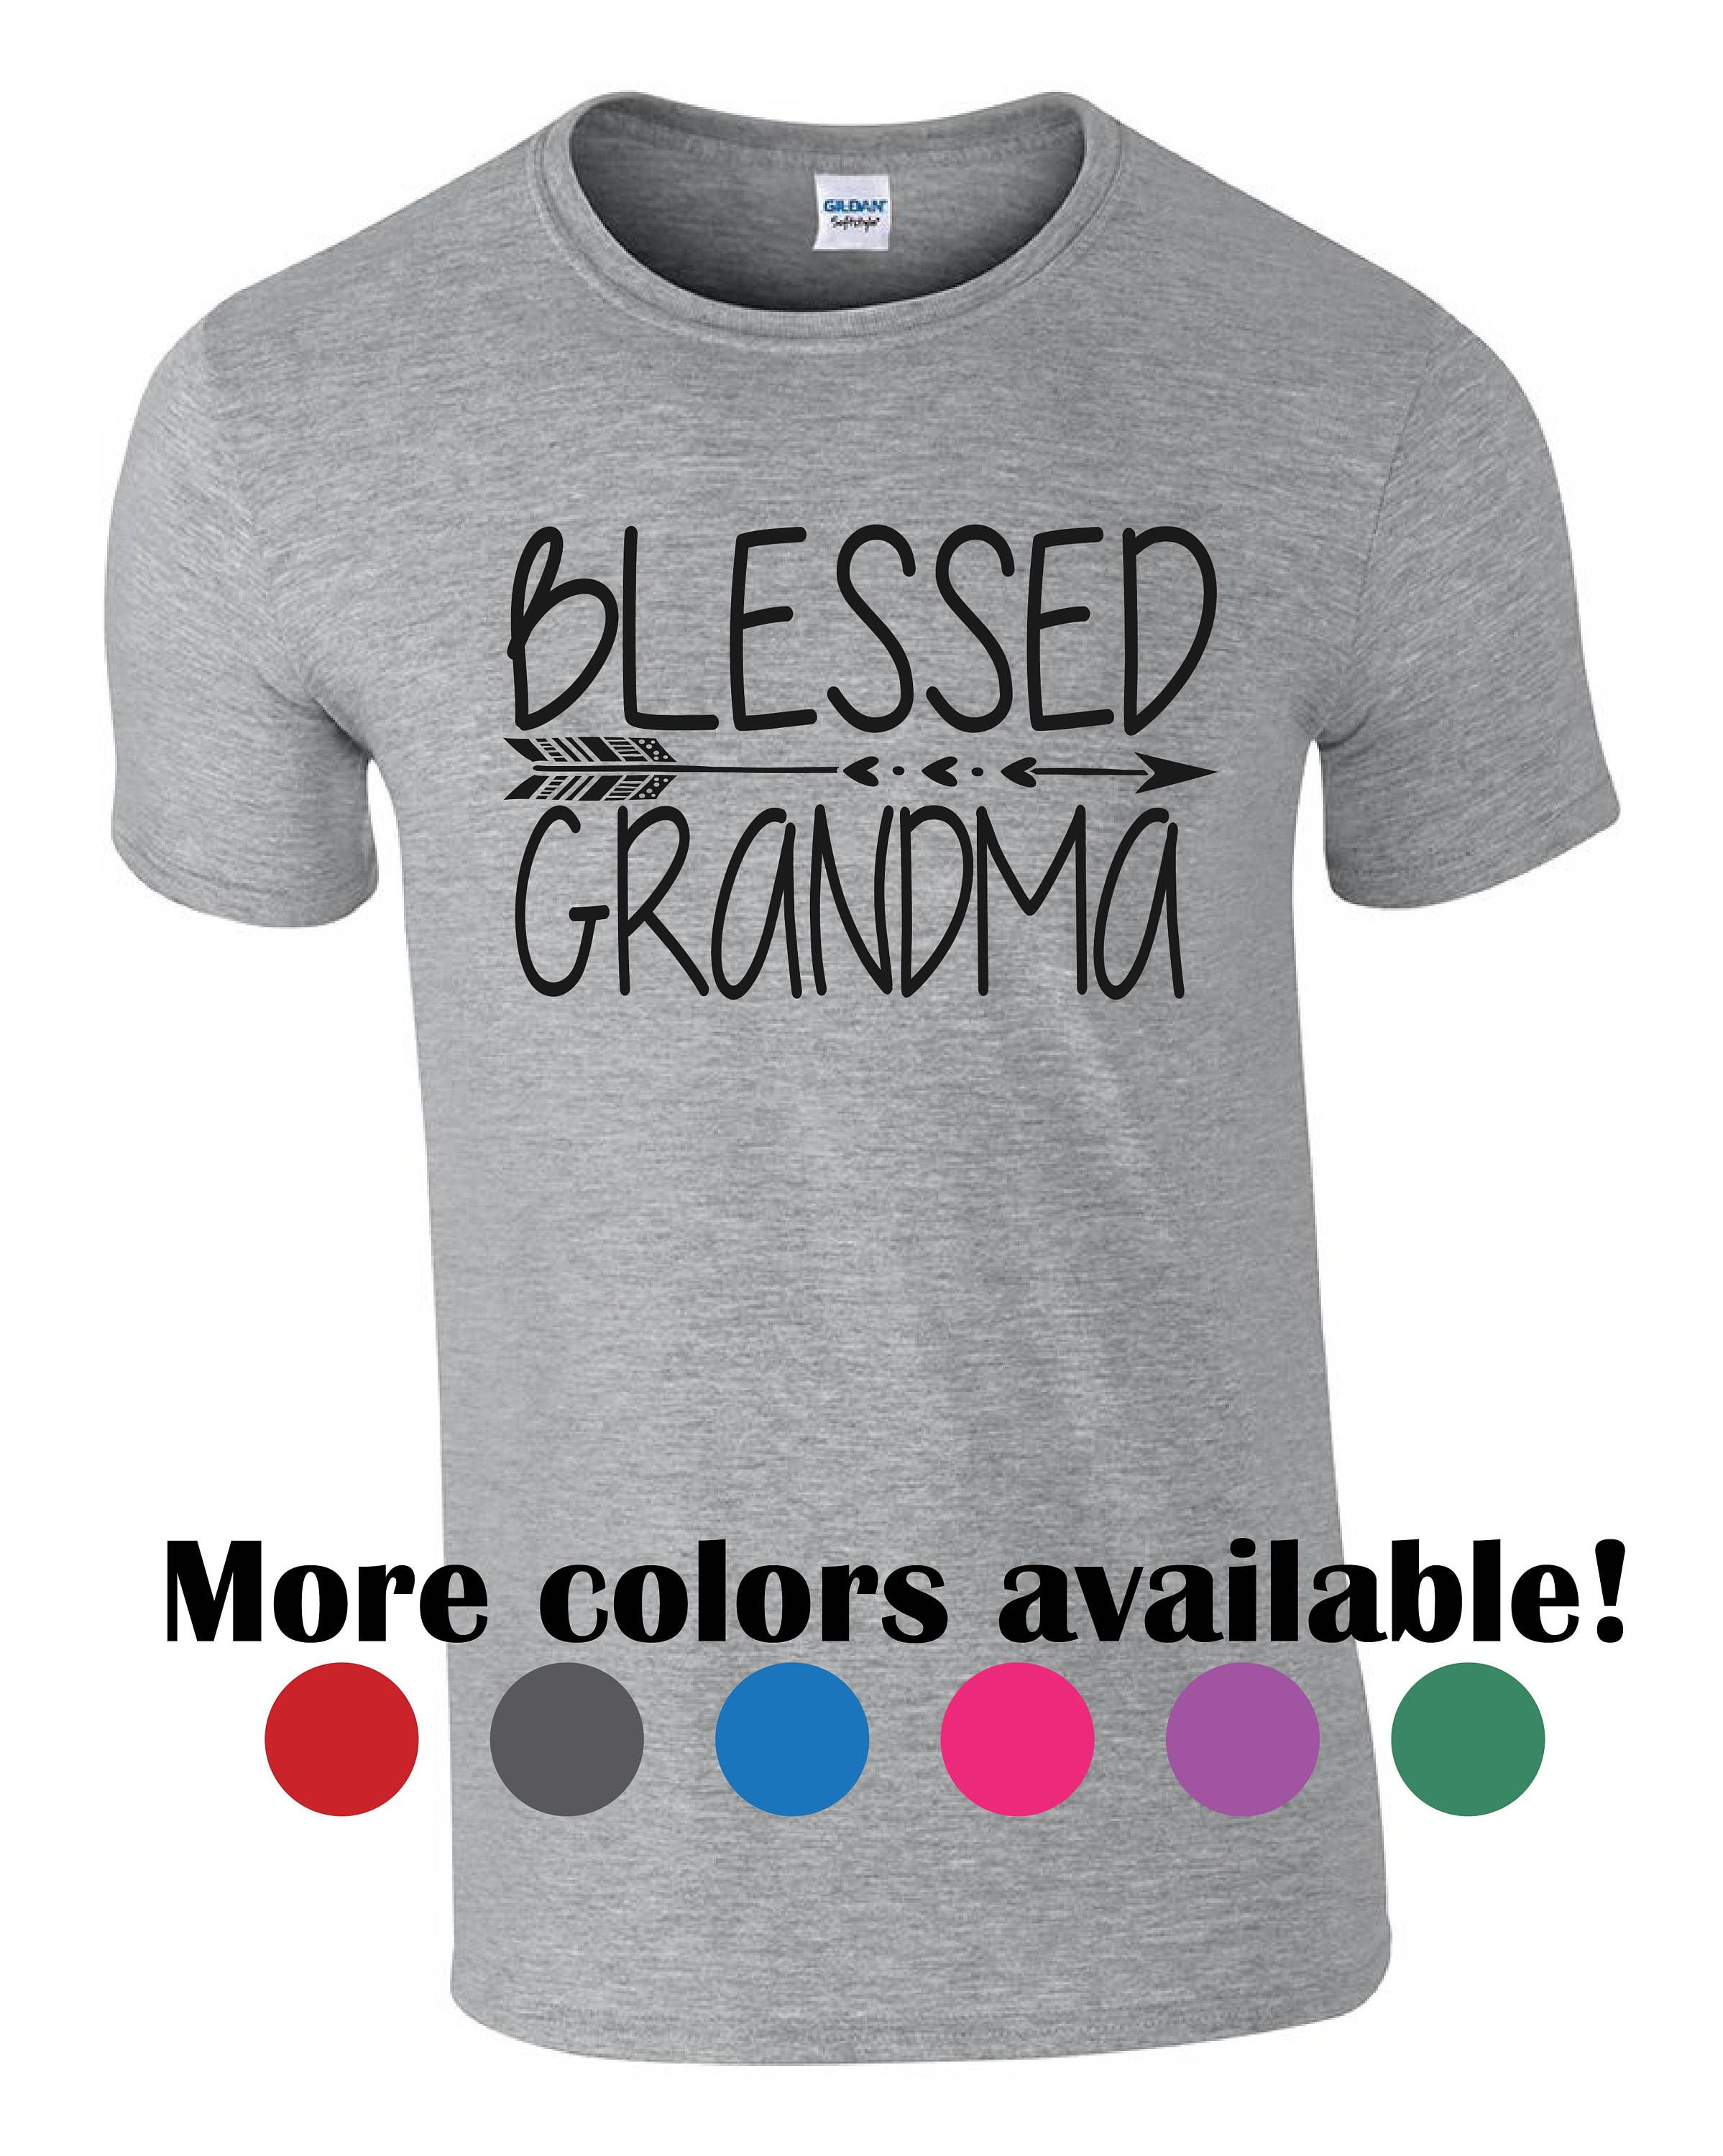 8804c4af Blessed Grandma t shirt. Great gift idea for grandmother. Mother's day gift.  Arrow design. Funny shirt for grandma. Custom grandma shirt